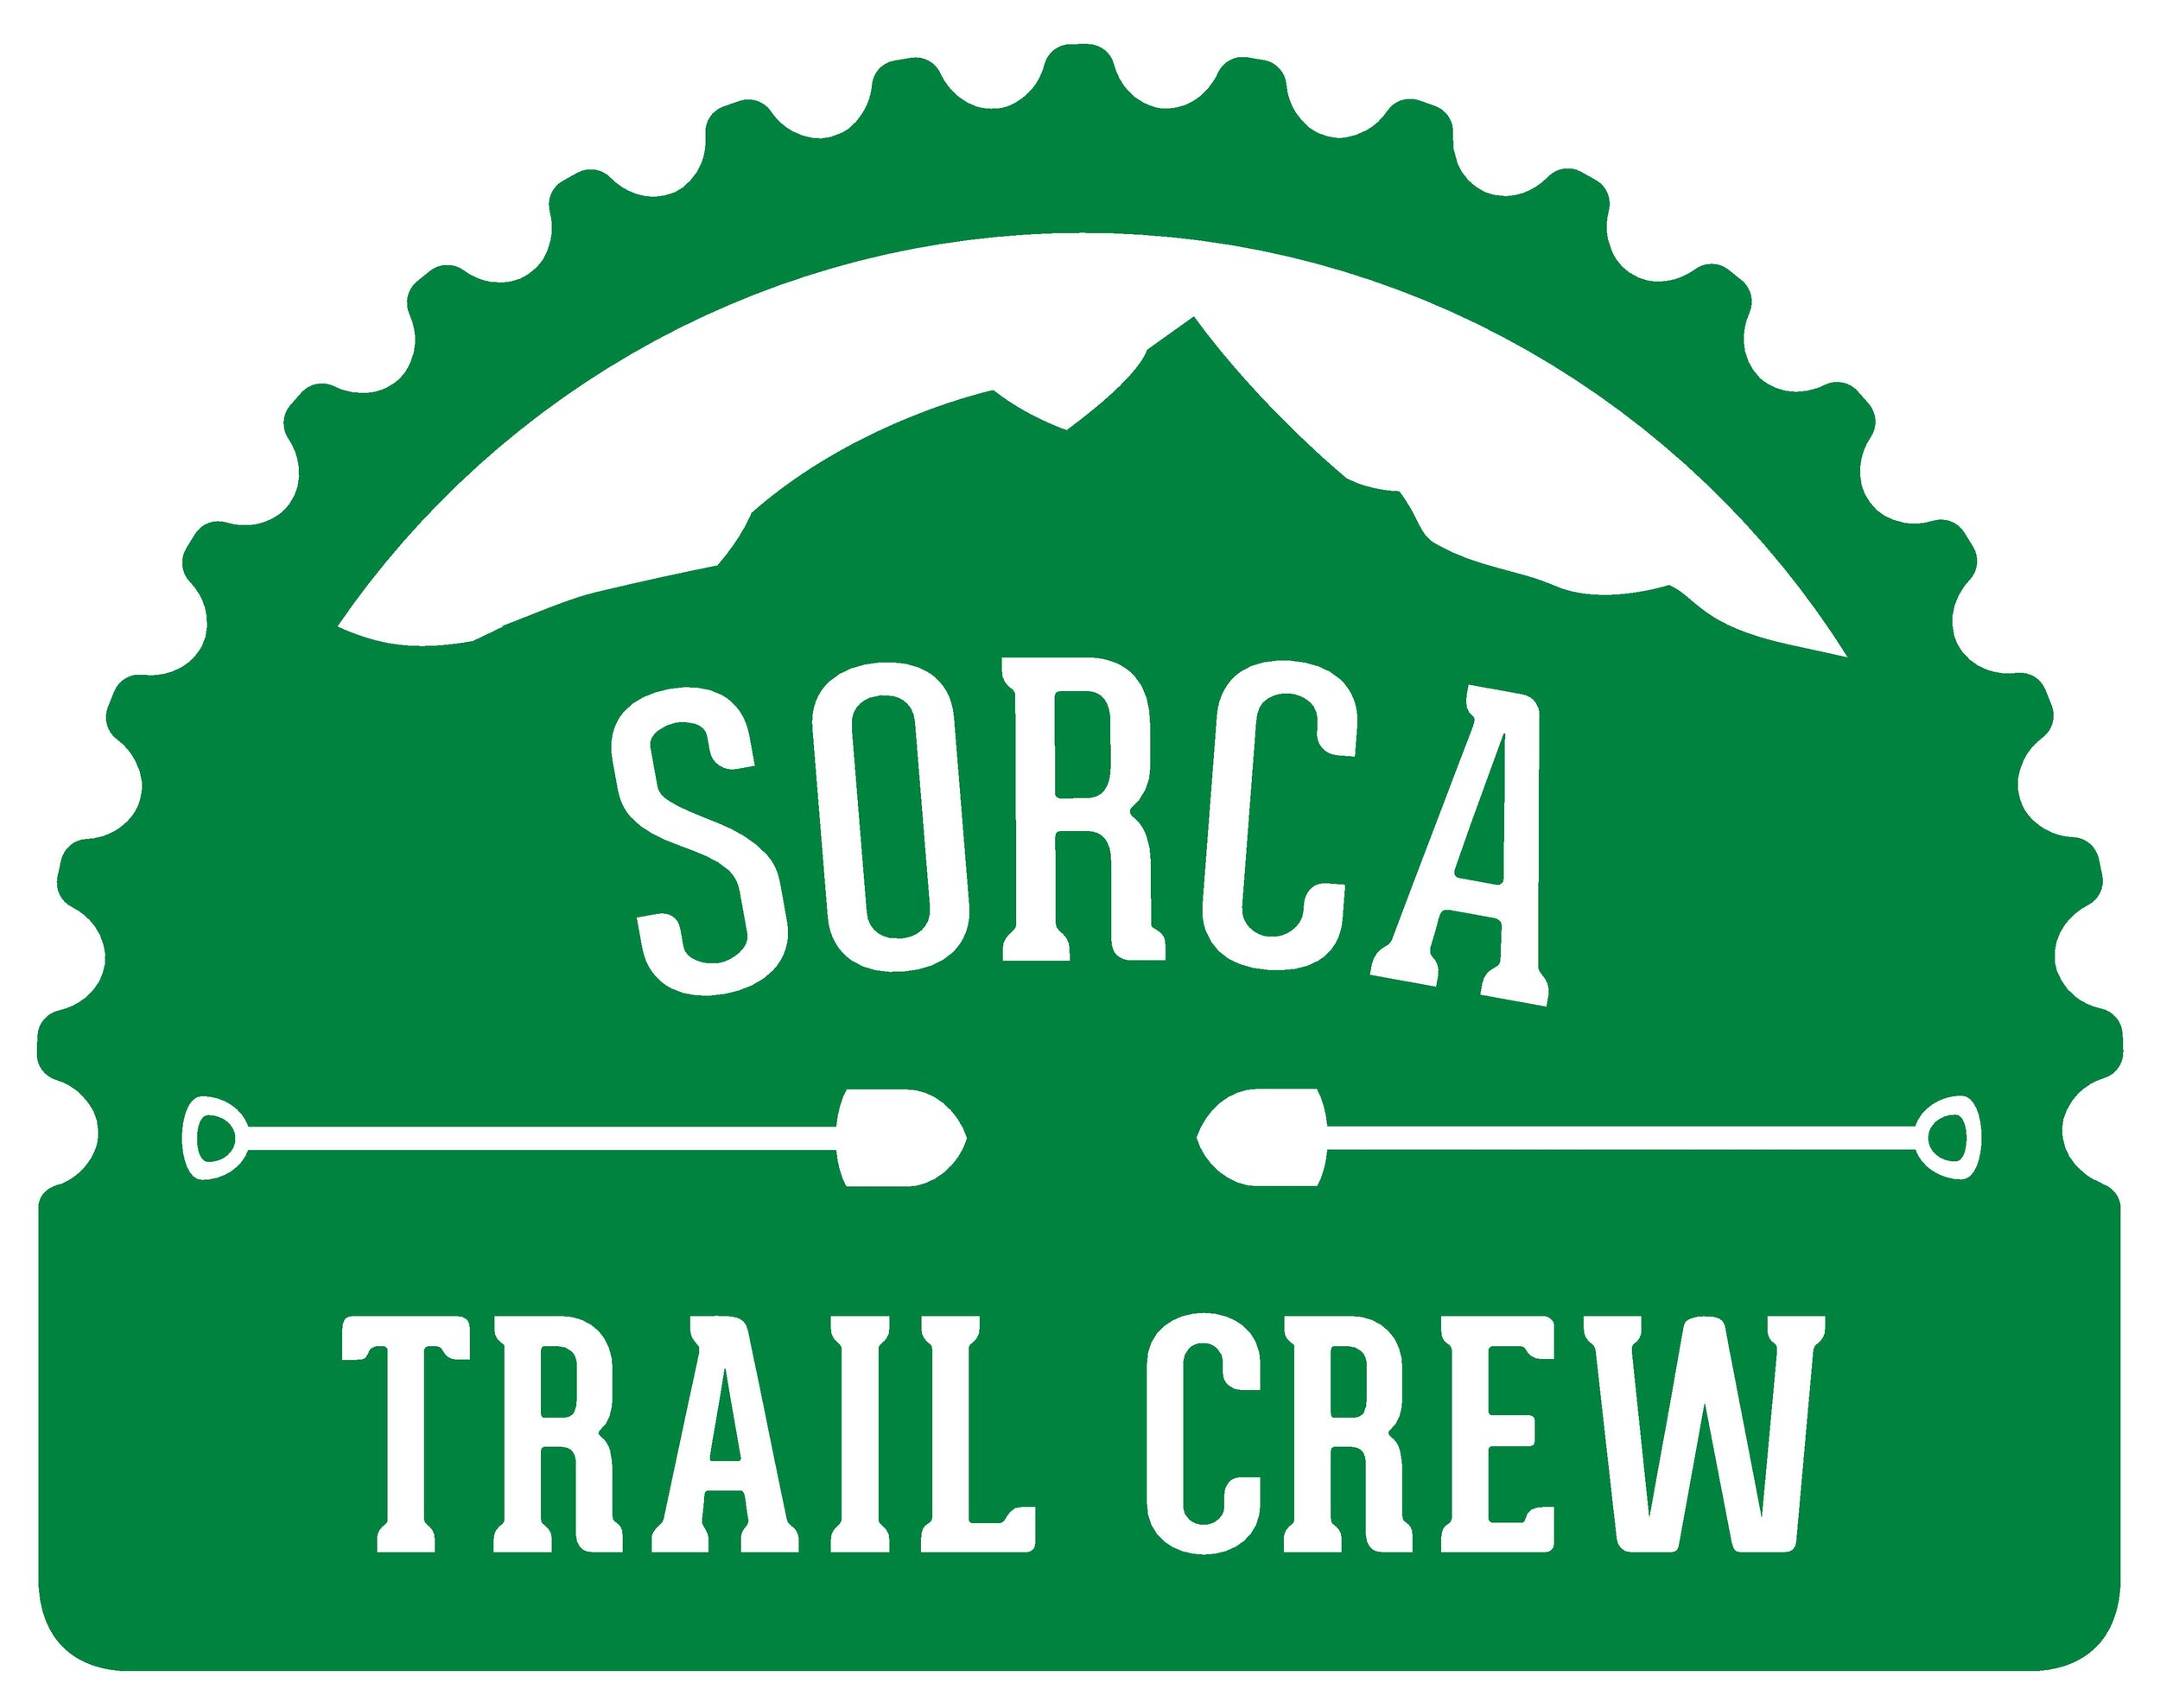 SORCA   Squamish Off Road Cycling Association coordinate all things mountain biking in Squamish. They maintain trails, organize races, and run community events. Without SORCA, mountain biking in Squamish wouldn't be where it is today.  Please consider buying a trail pass  here . All of the $20 goes directly to trail maintenance.